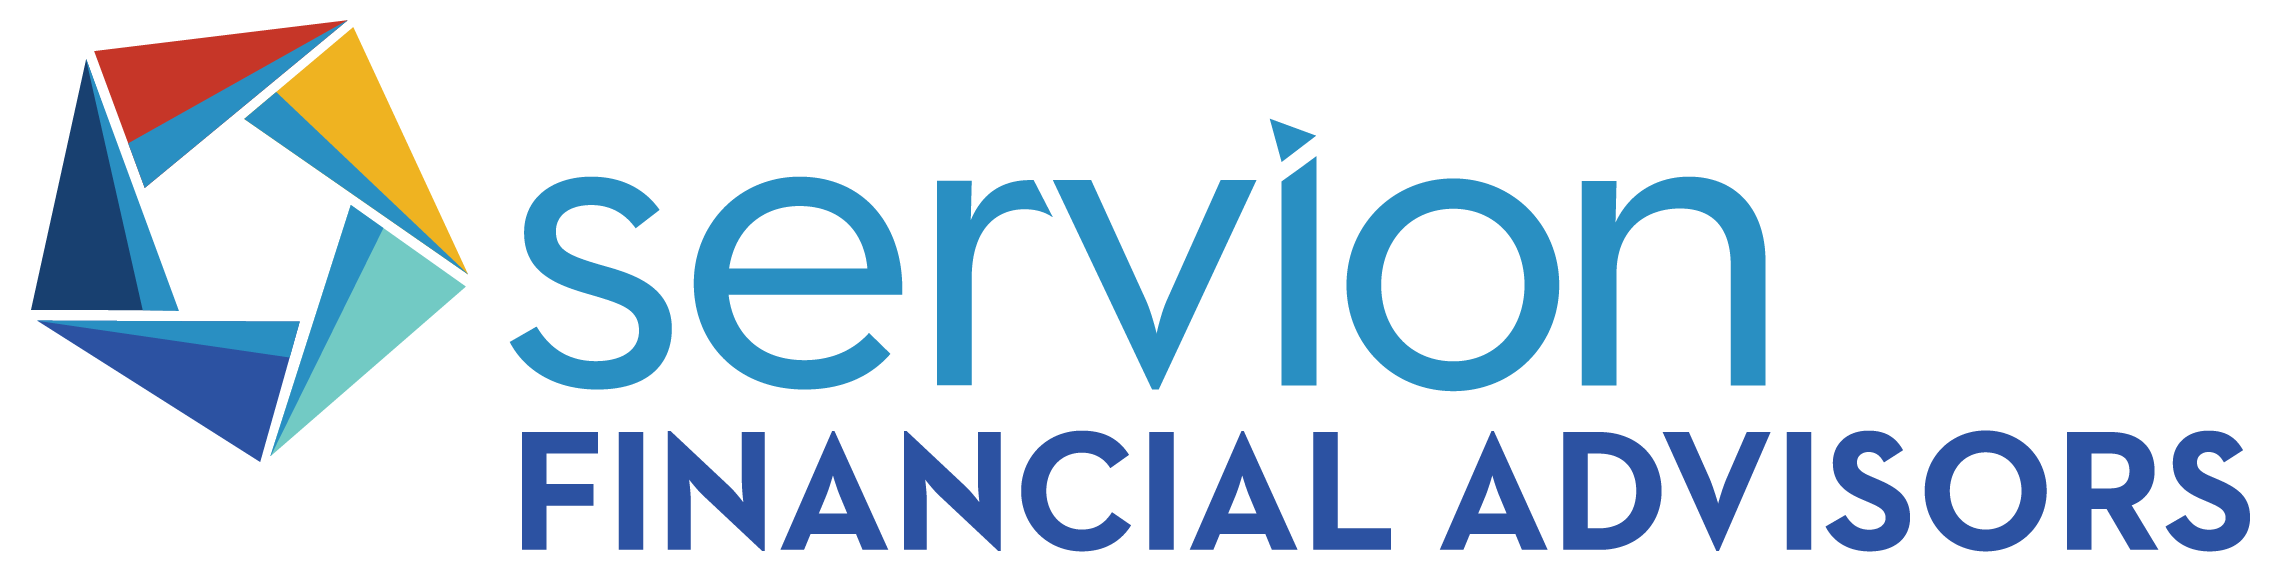 Servion Financial Advisors